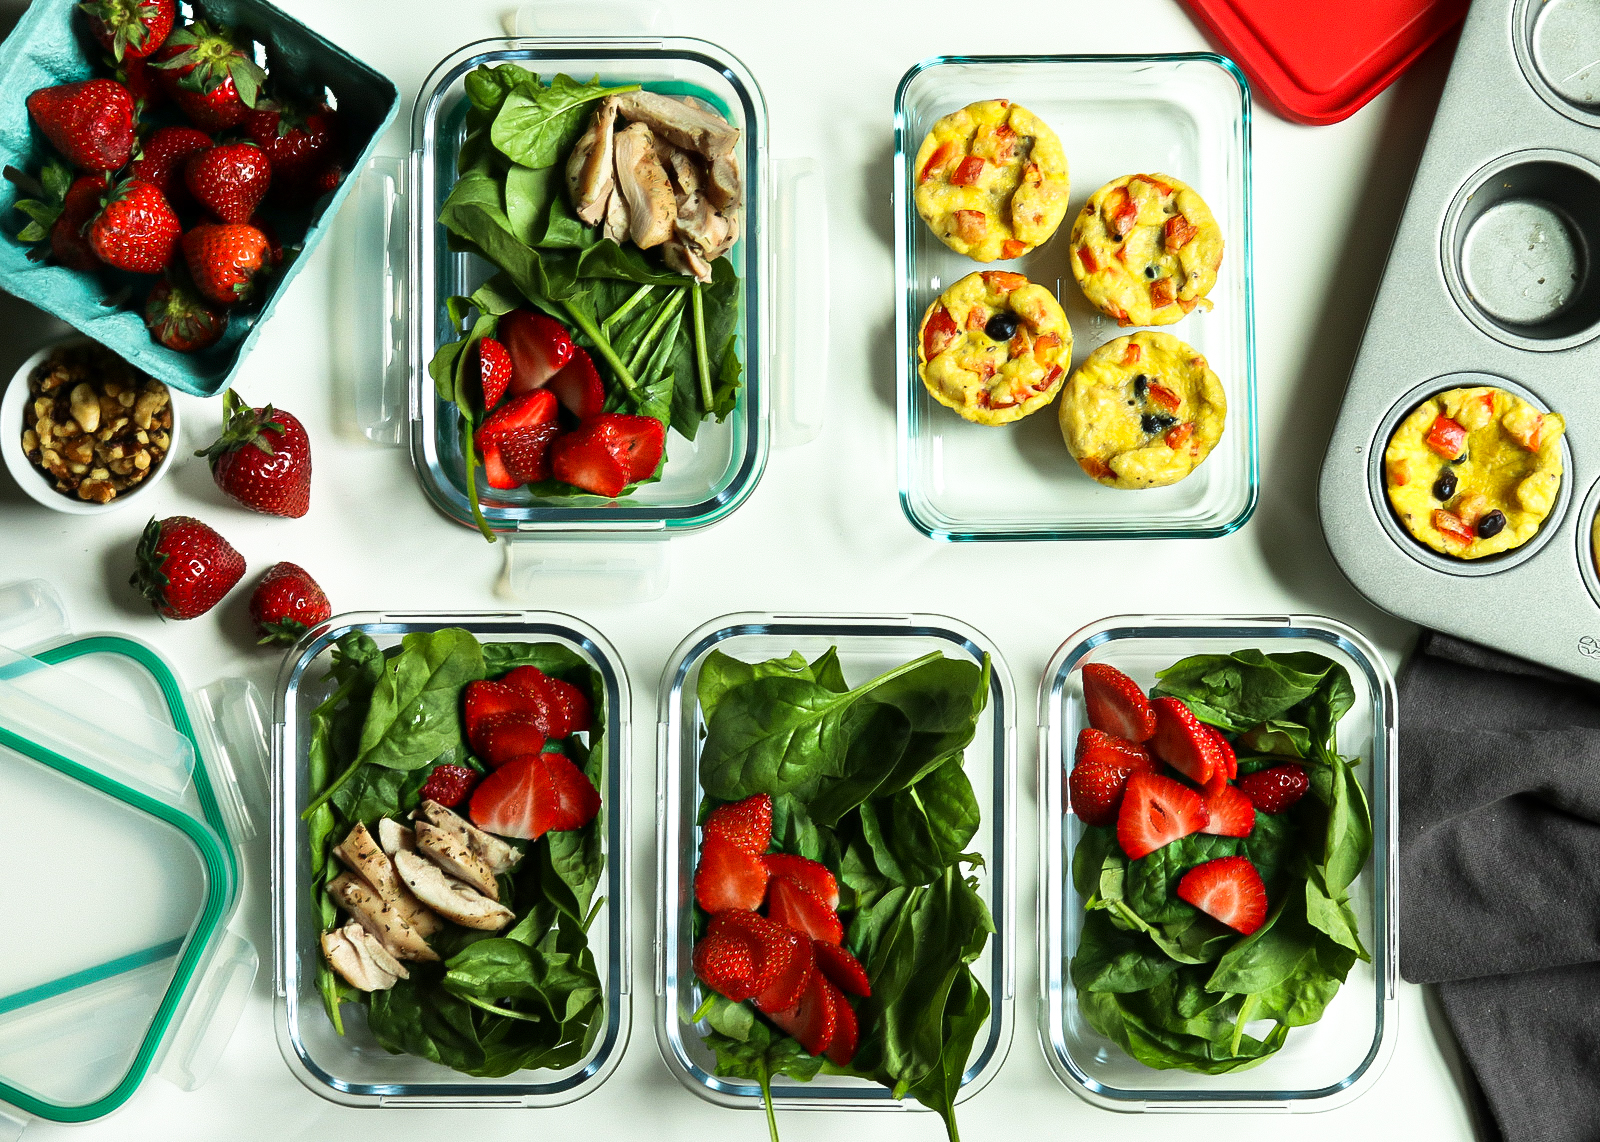 strawberry salad and egg muffin meal prep